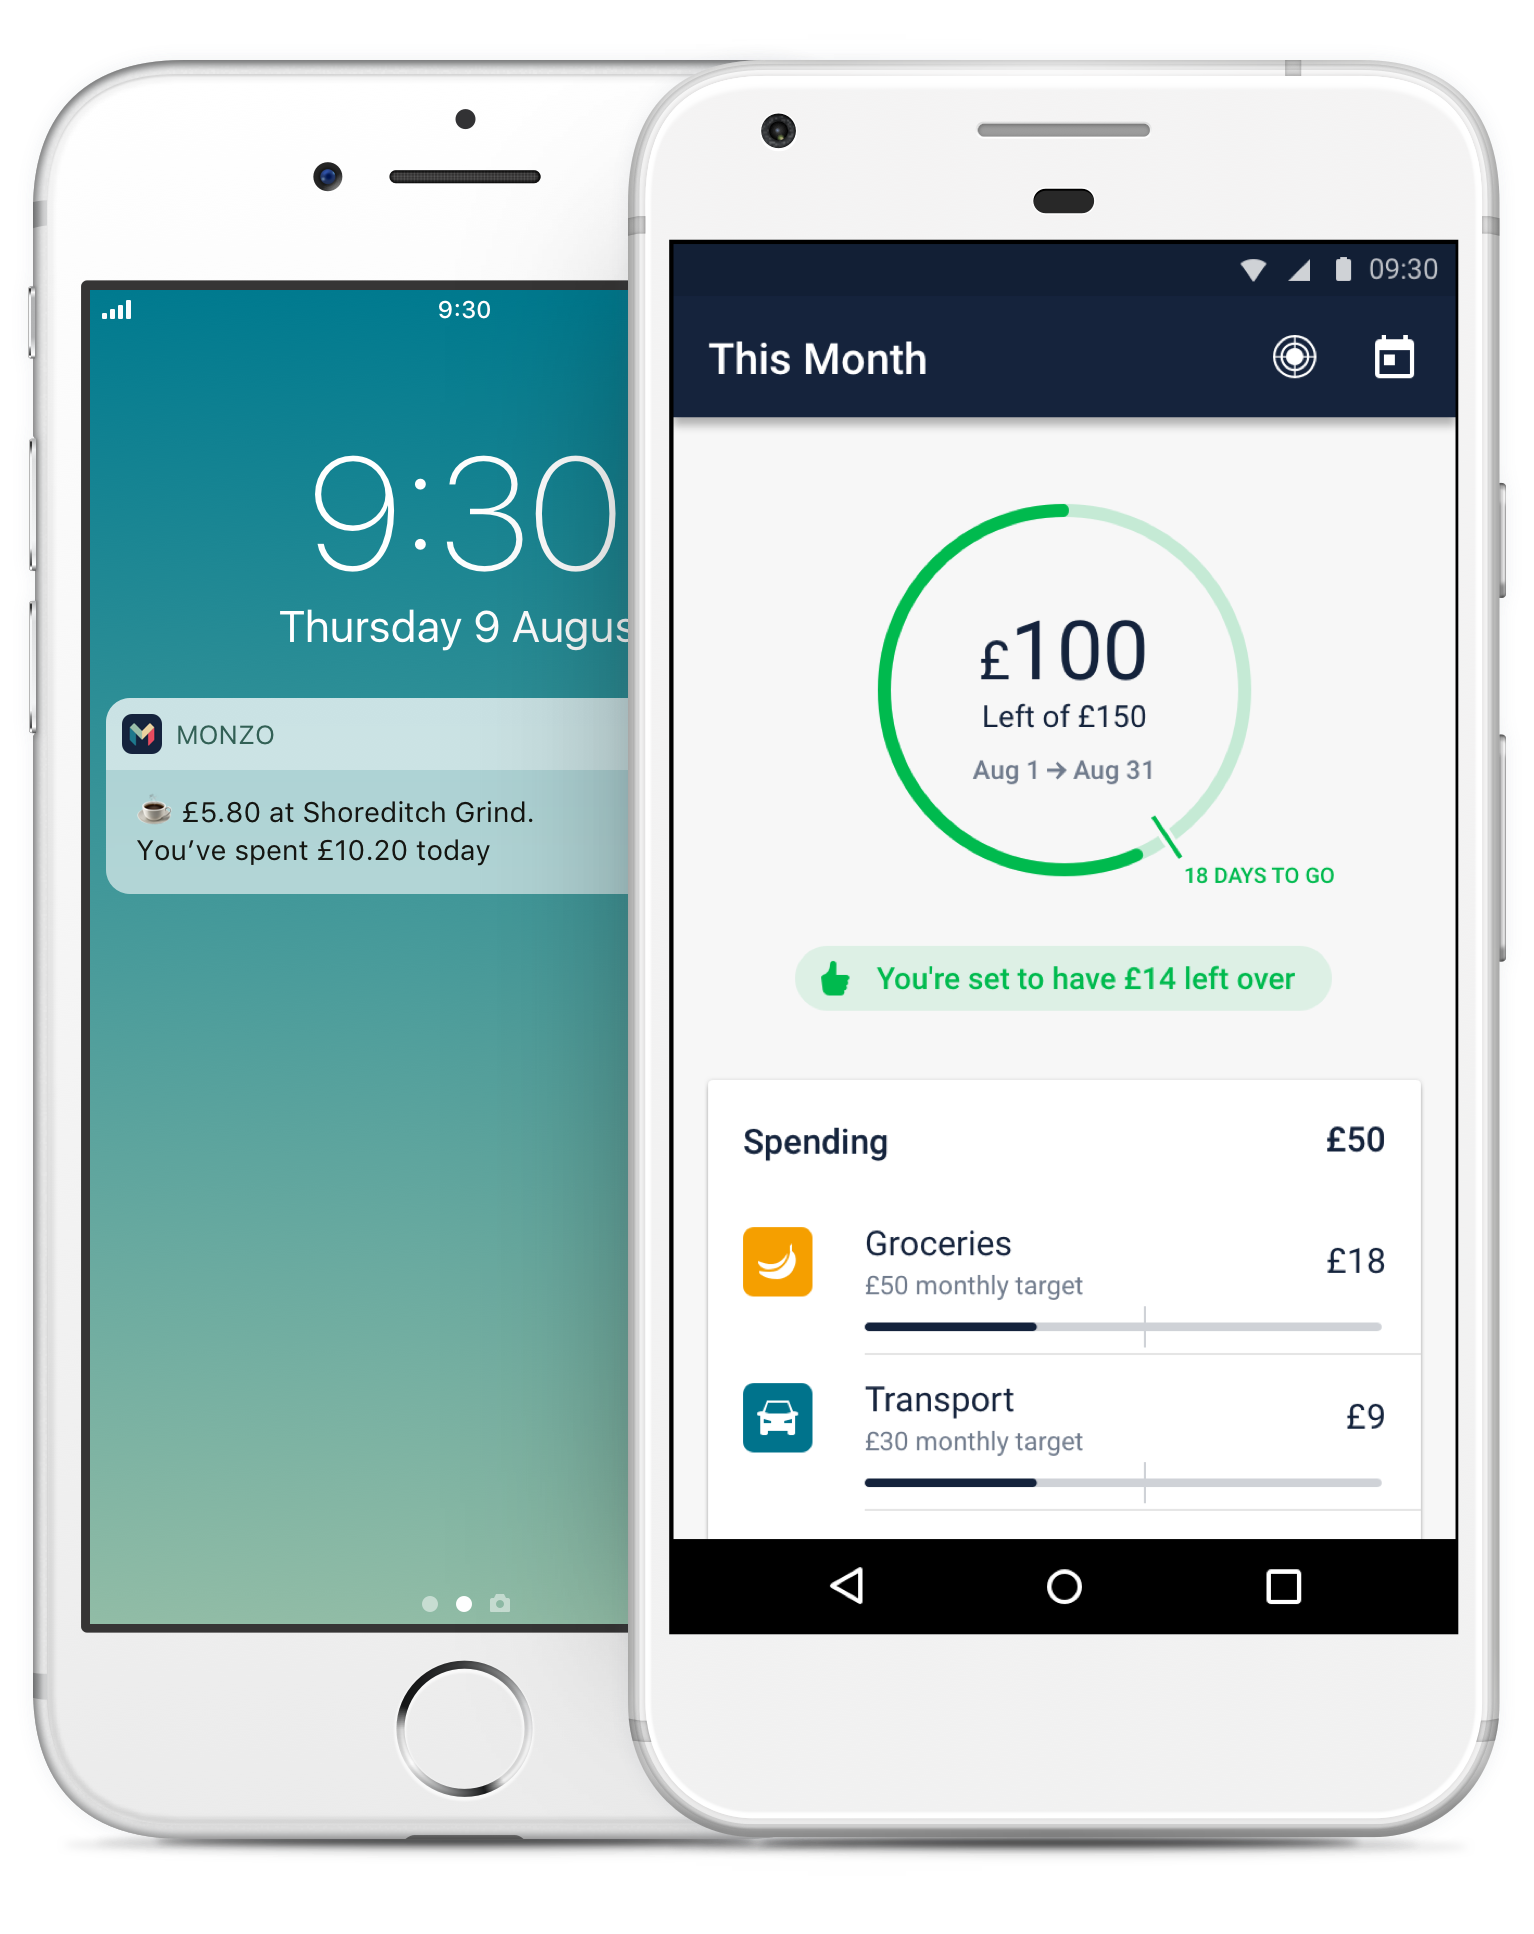 Manage your money with instant notificatons and smart budgeting